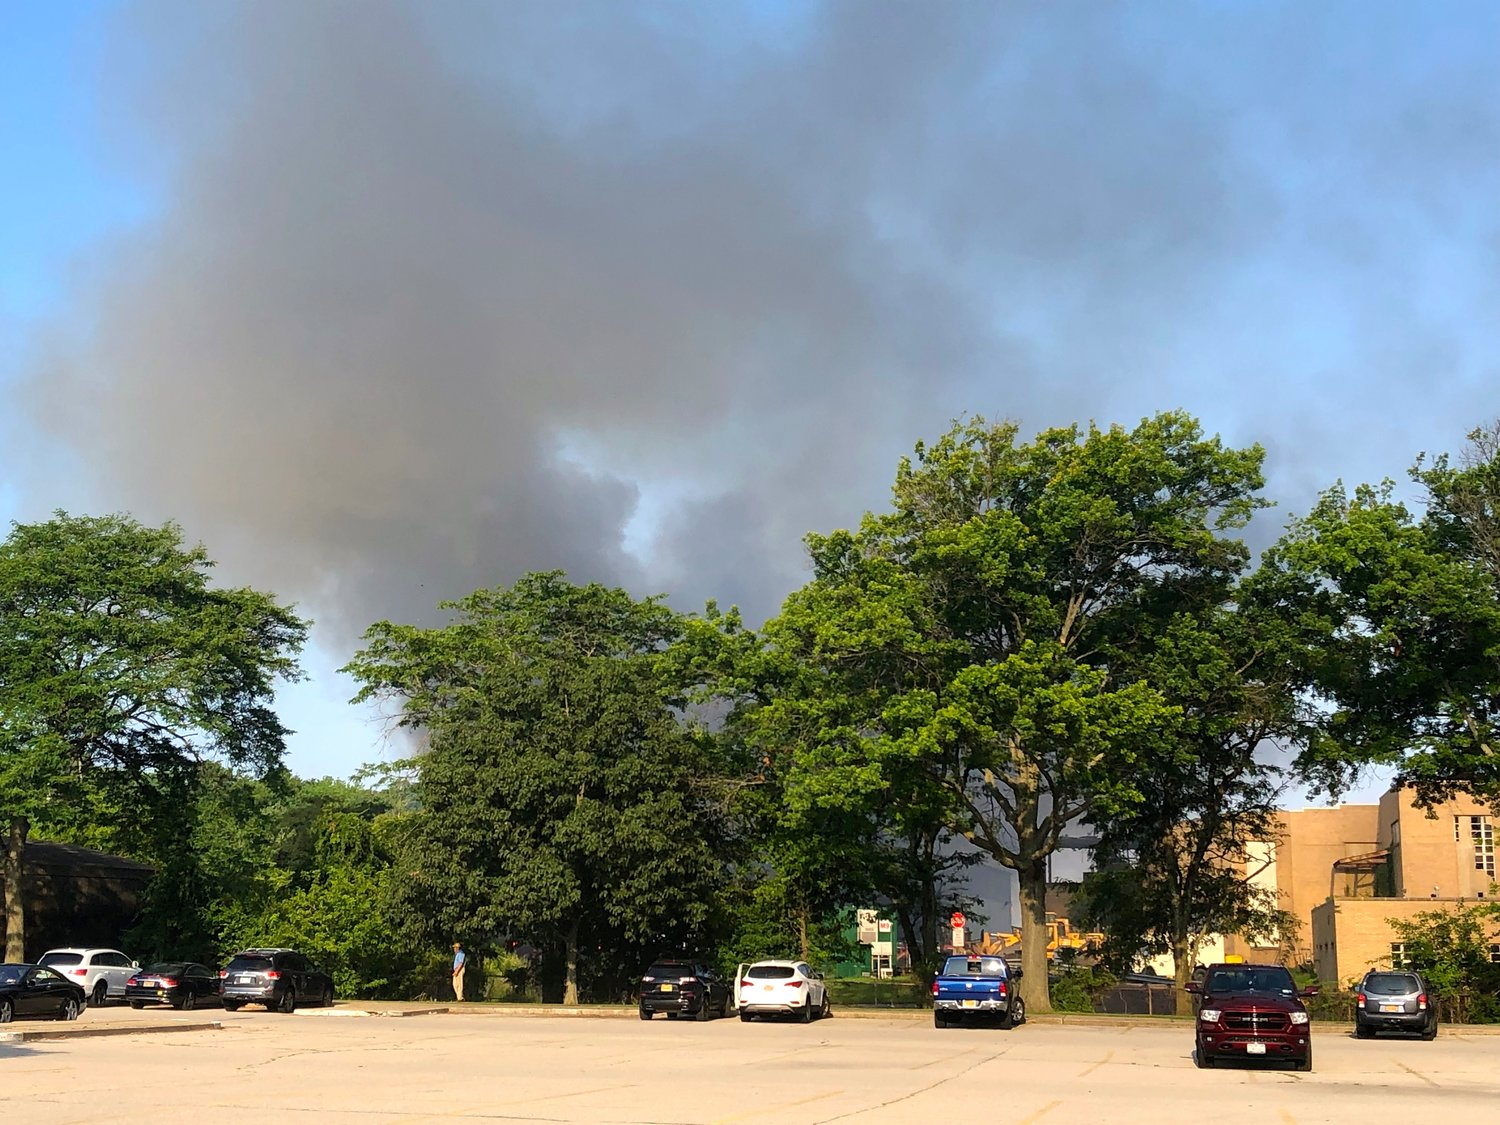 A view of the blaze from the parking lot of the Town of Hempstead's golf course in Merrick.